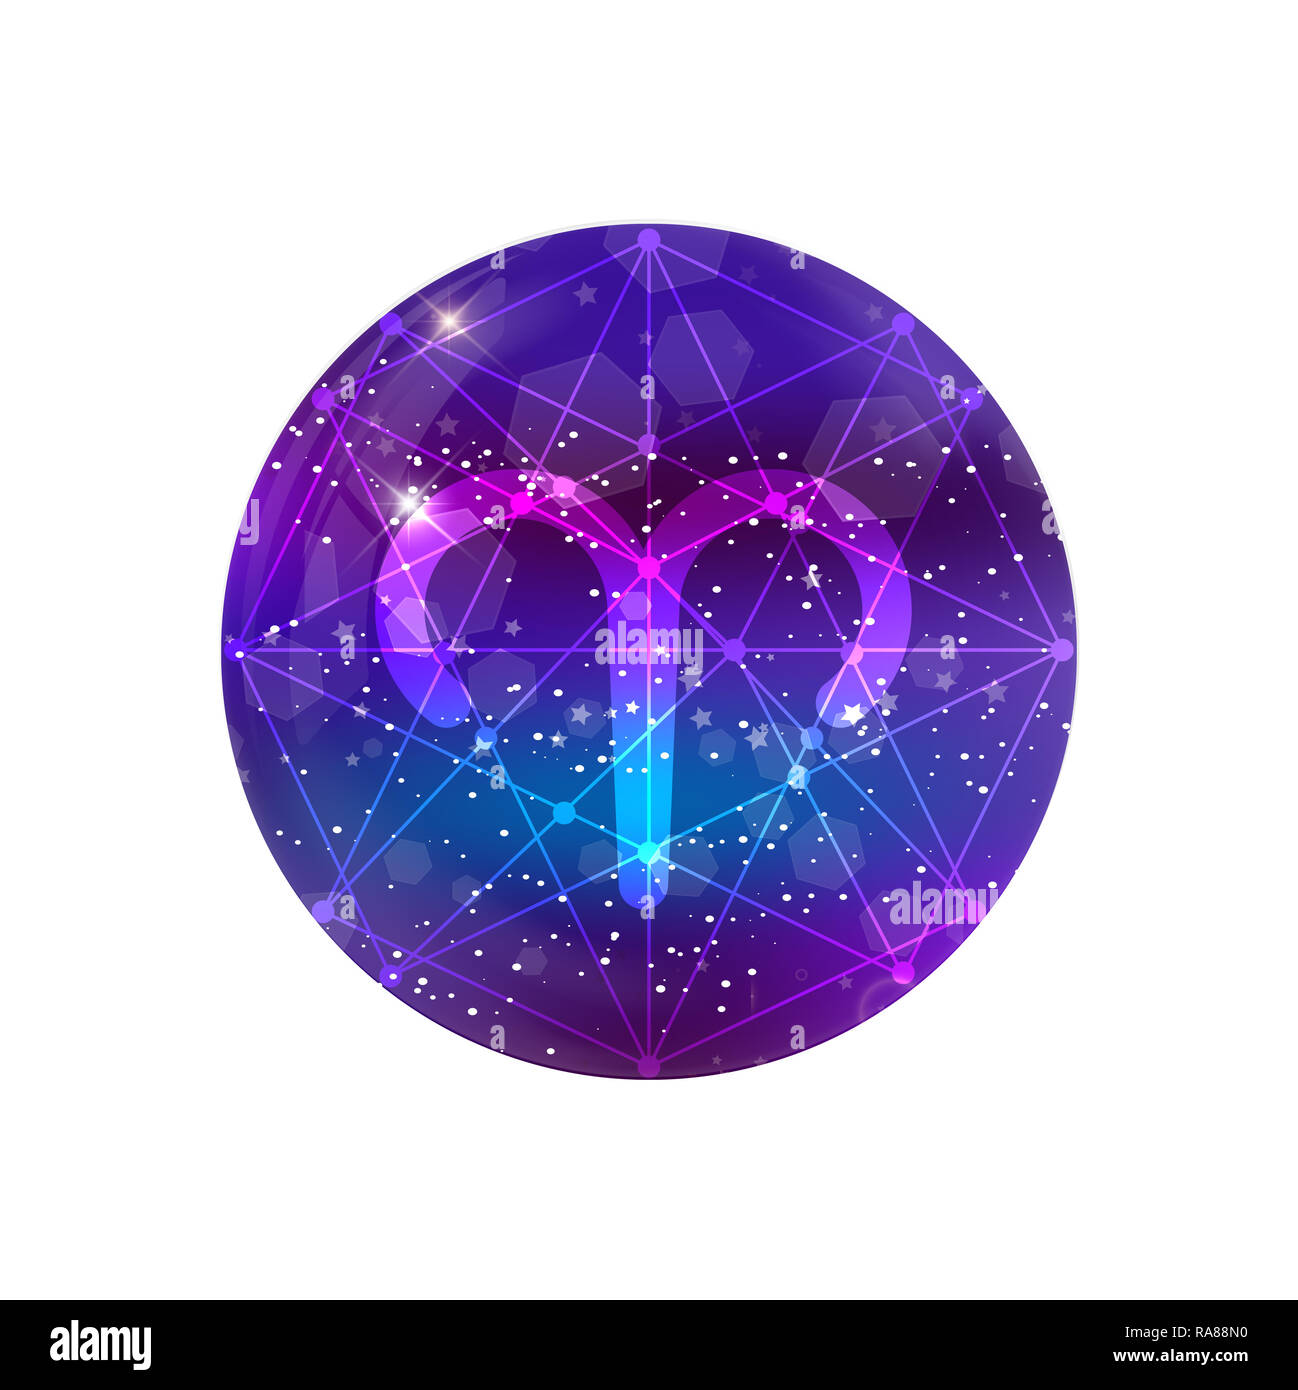 Aries Zodiac Sign And Constellation On A Cosmic Purple Sky With Glowing Stars And Nebula Isolated On White Background Neon Ram Icon Web Button Clip Stock Photo Alamy